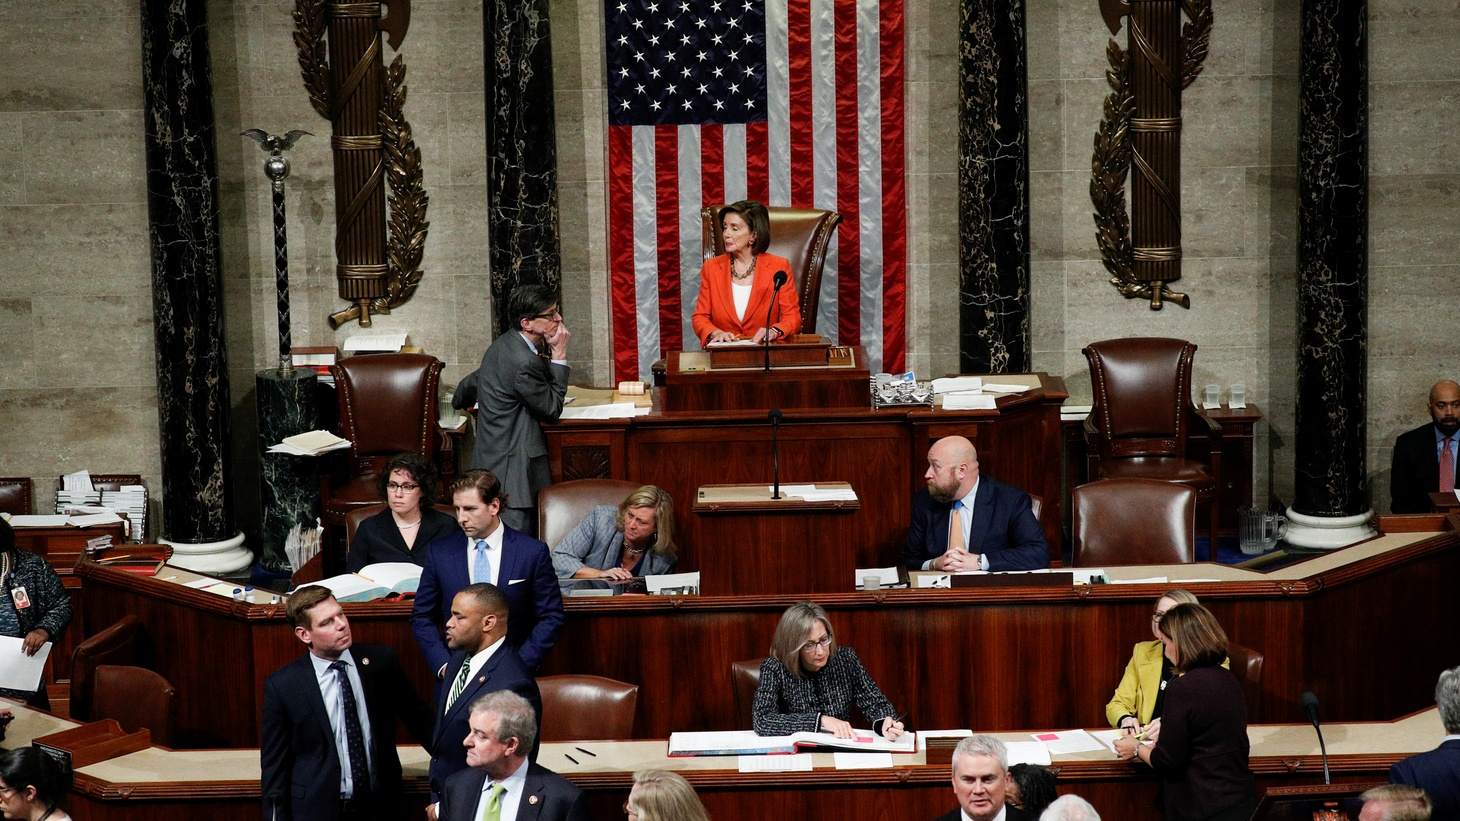 Speaker of the House Nancy Pelosi presides over the U.S. House of Representatives vote on a resolution that outlines the next steps in the impeachment inquiry of U.S. President Donald Trump on Capitol Hill in Washington, U.S., October 31, 2019.